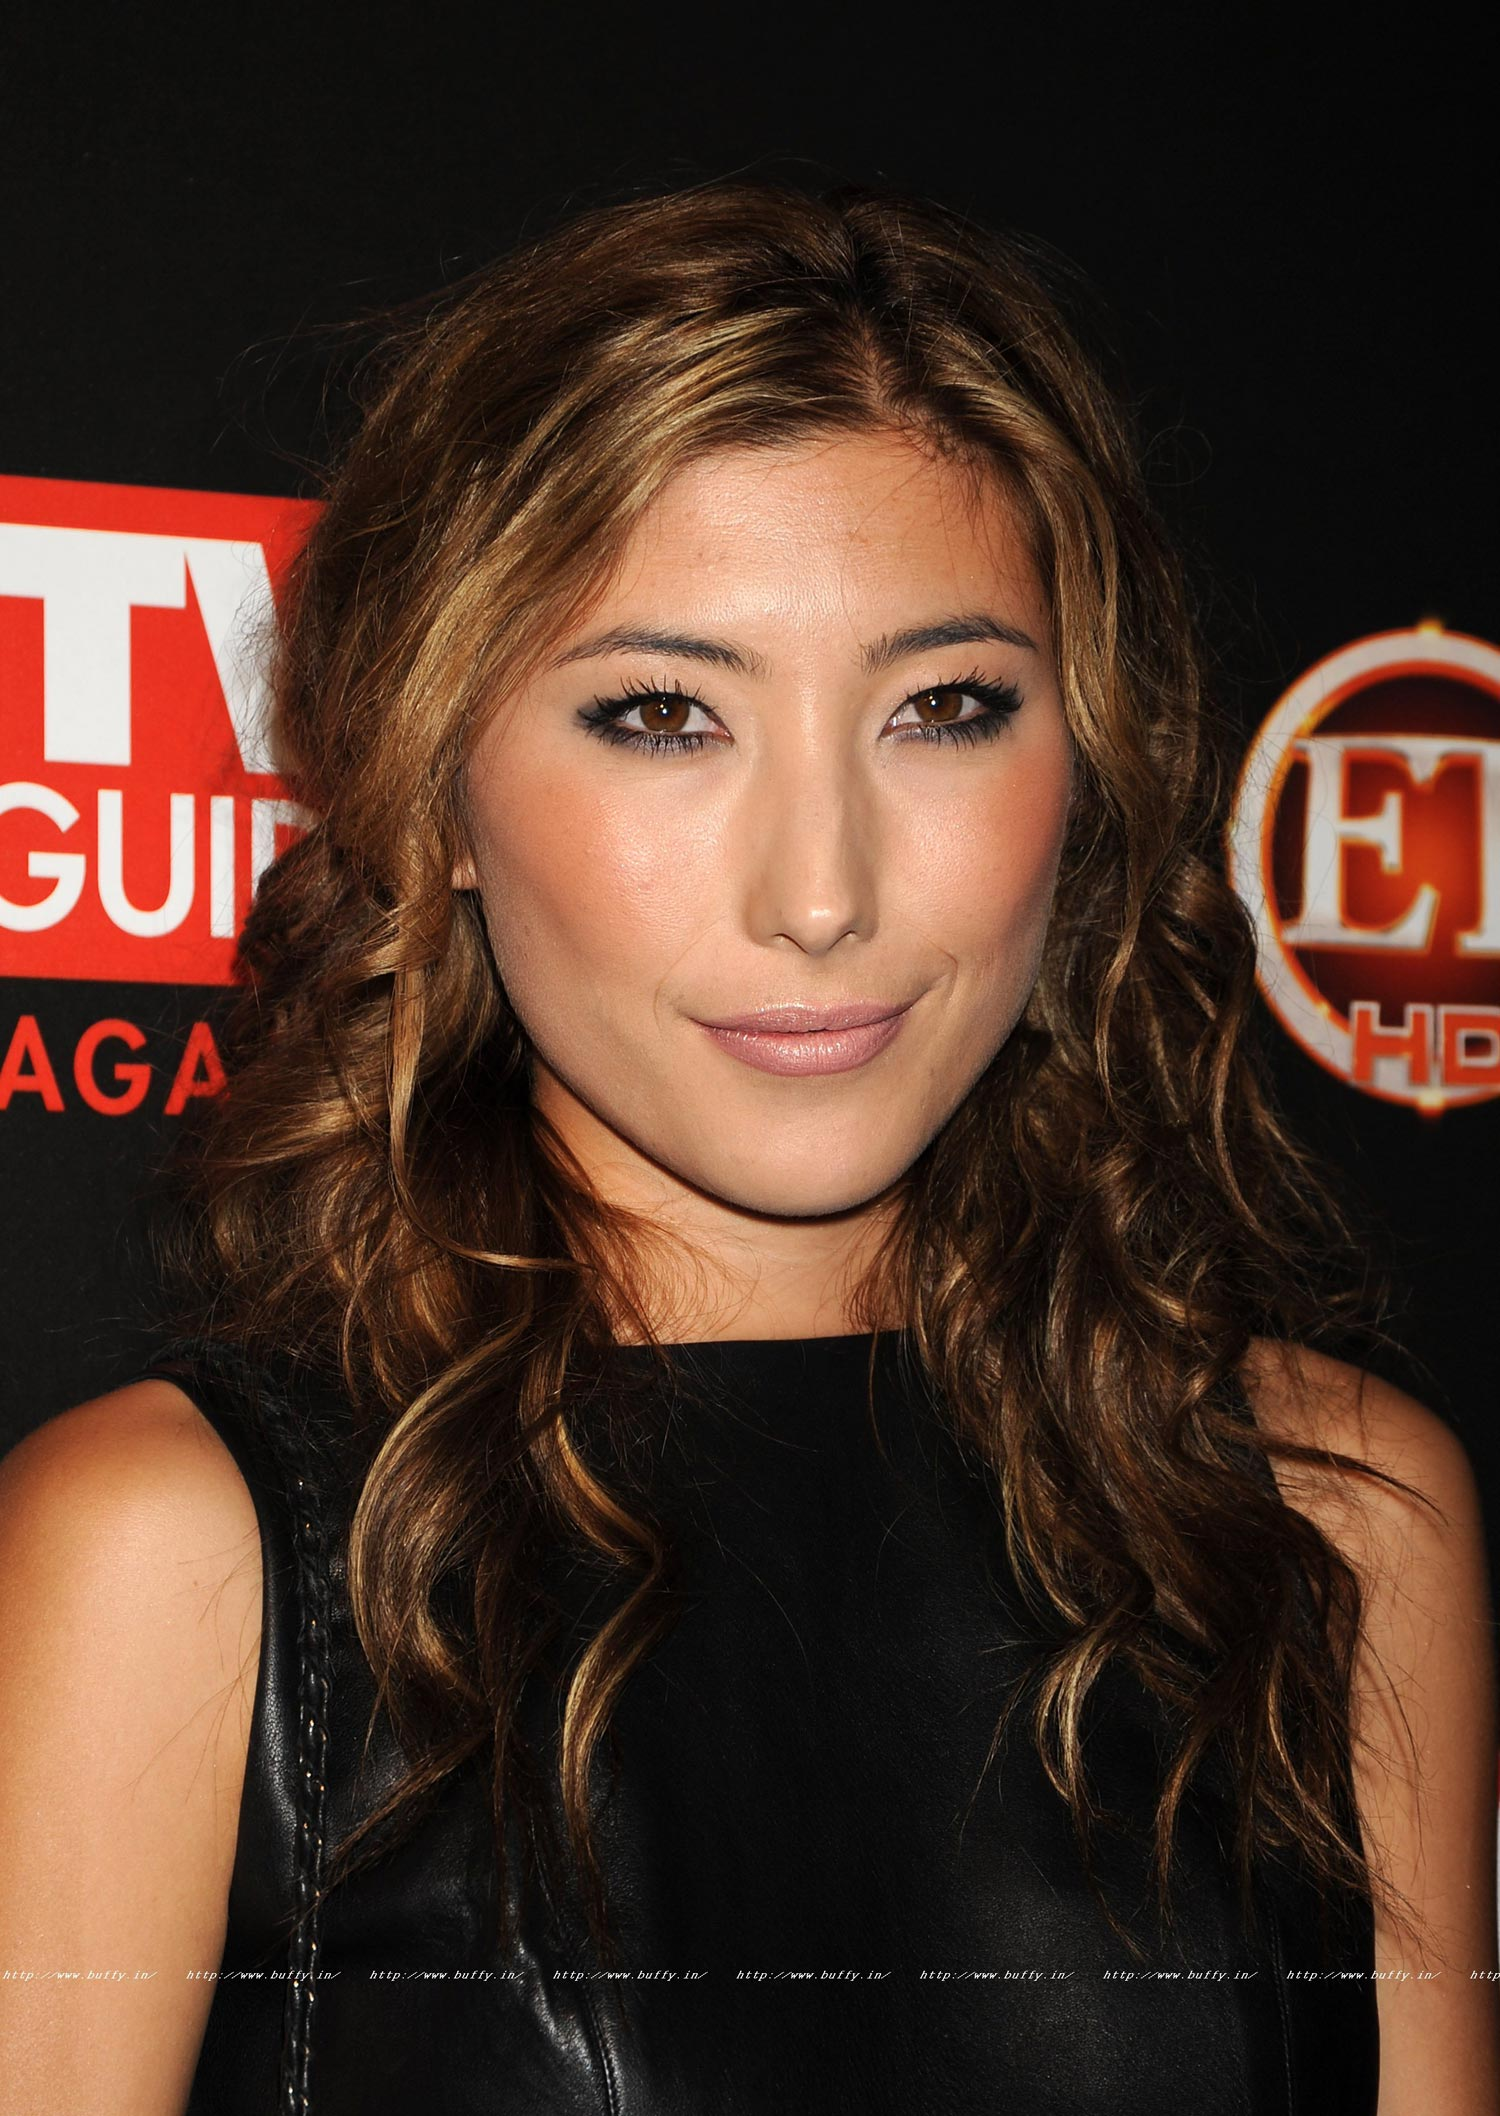 dichen lachman movies and tv shows